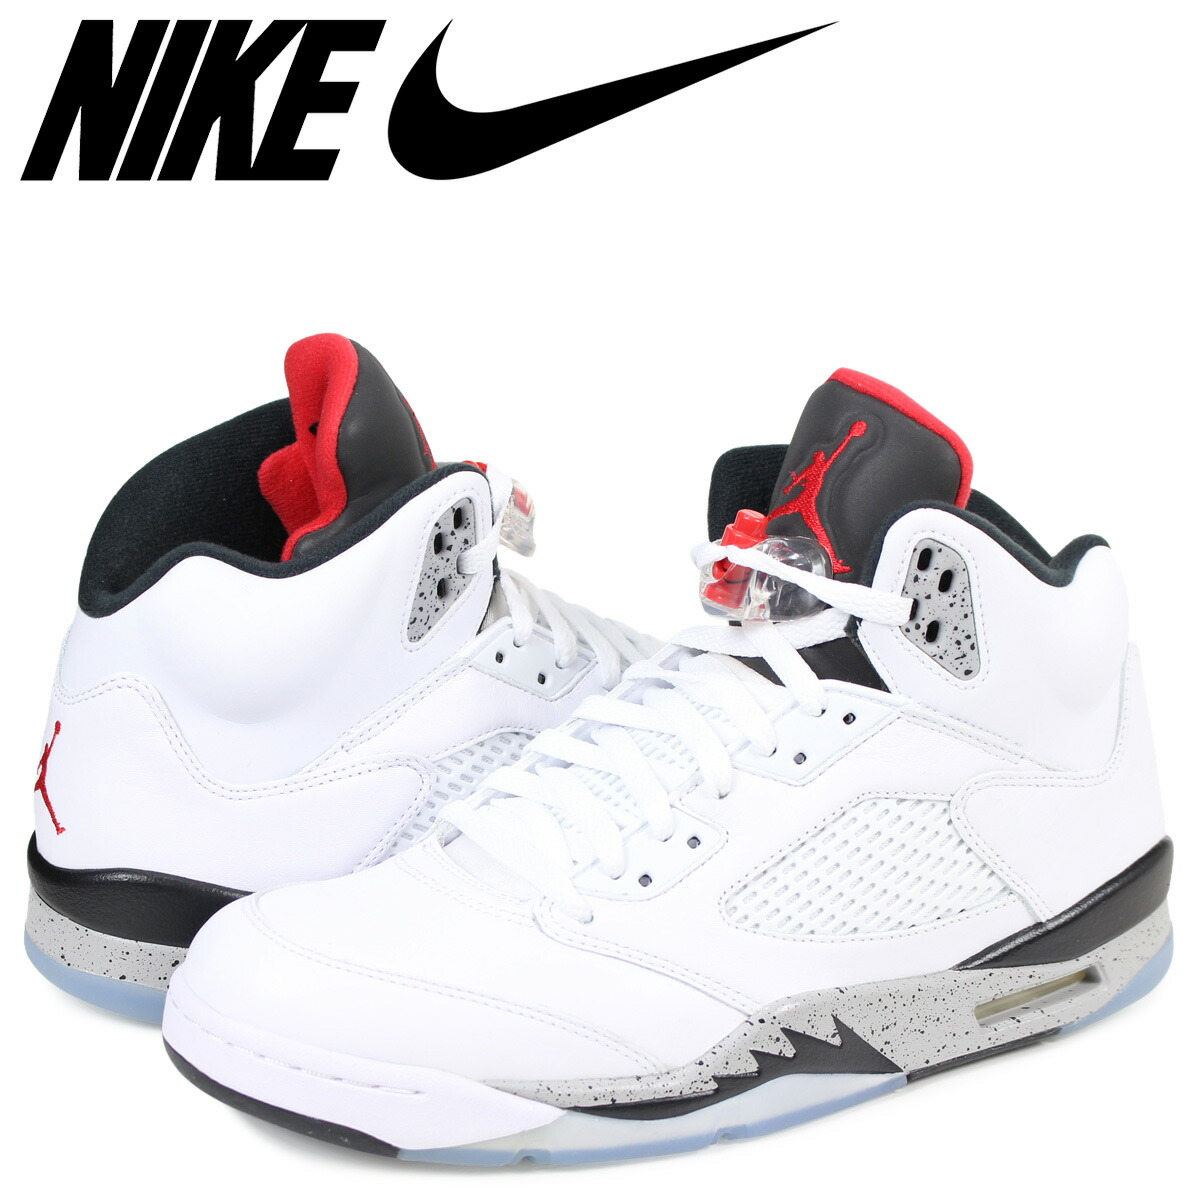 32e43f14b752 Whats up Sports  NIKE AIR JORDAN 5 RETRO WHITE CEMENT Nike Air ...